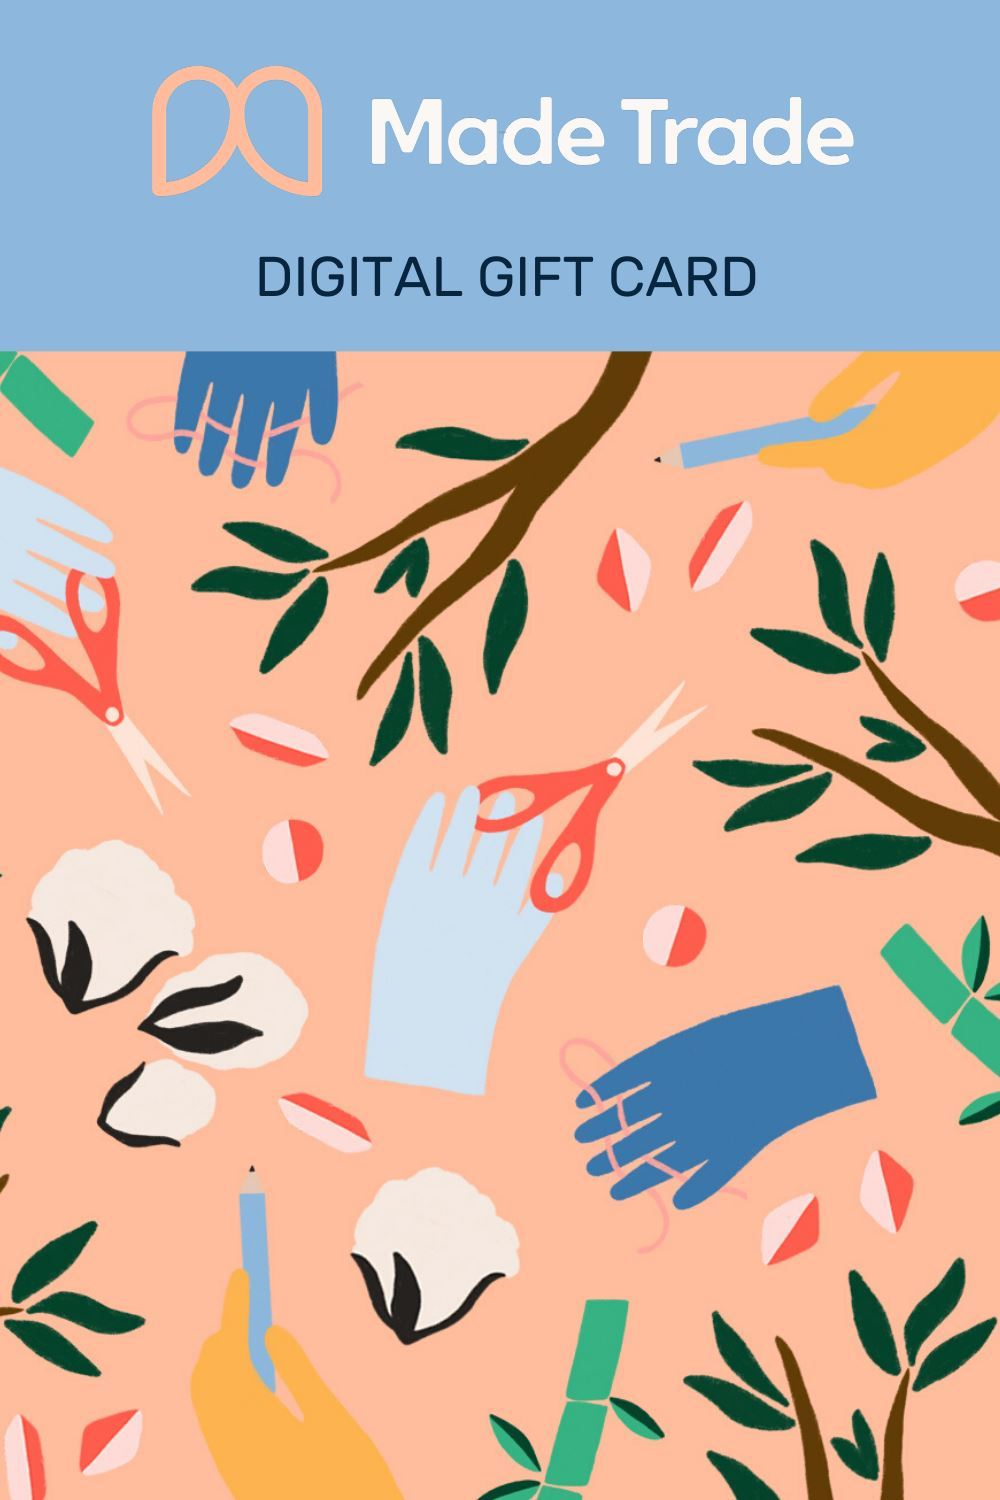 Digital Gift Card | Made Trade